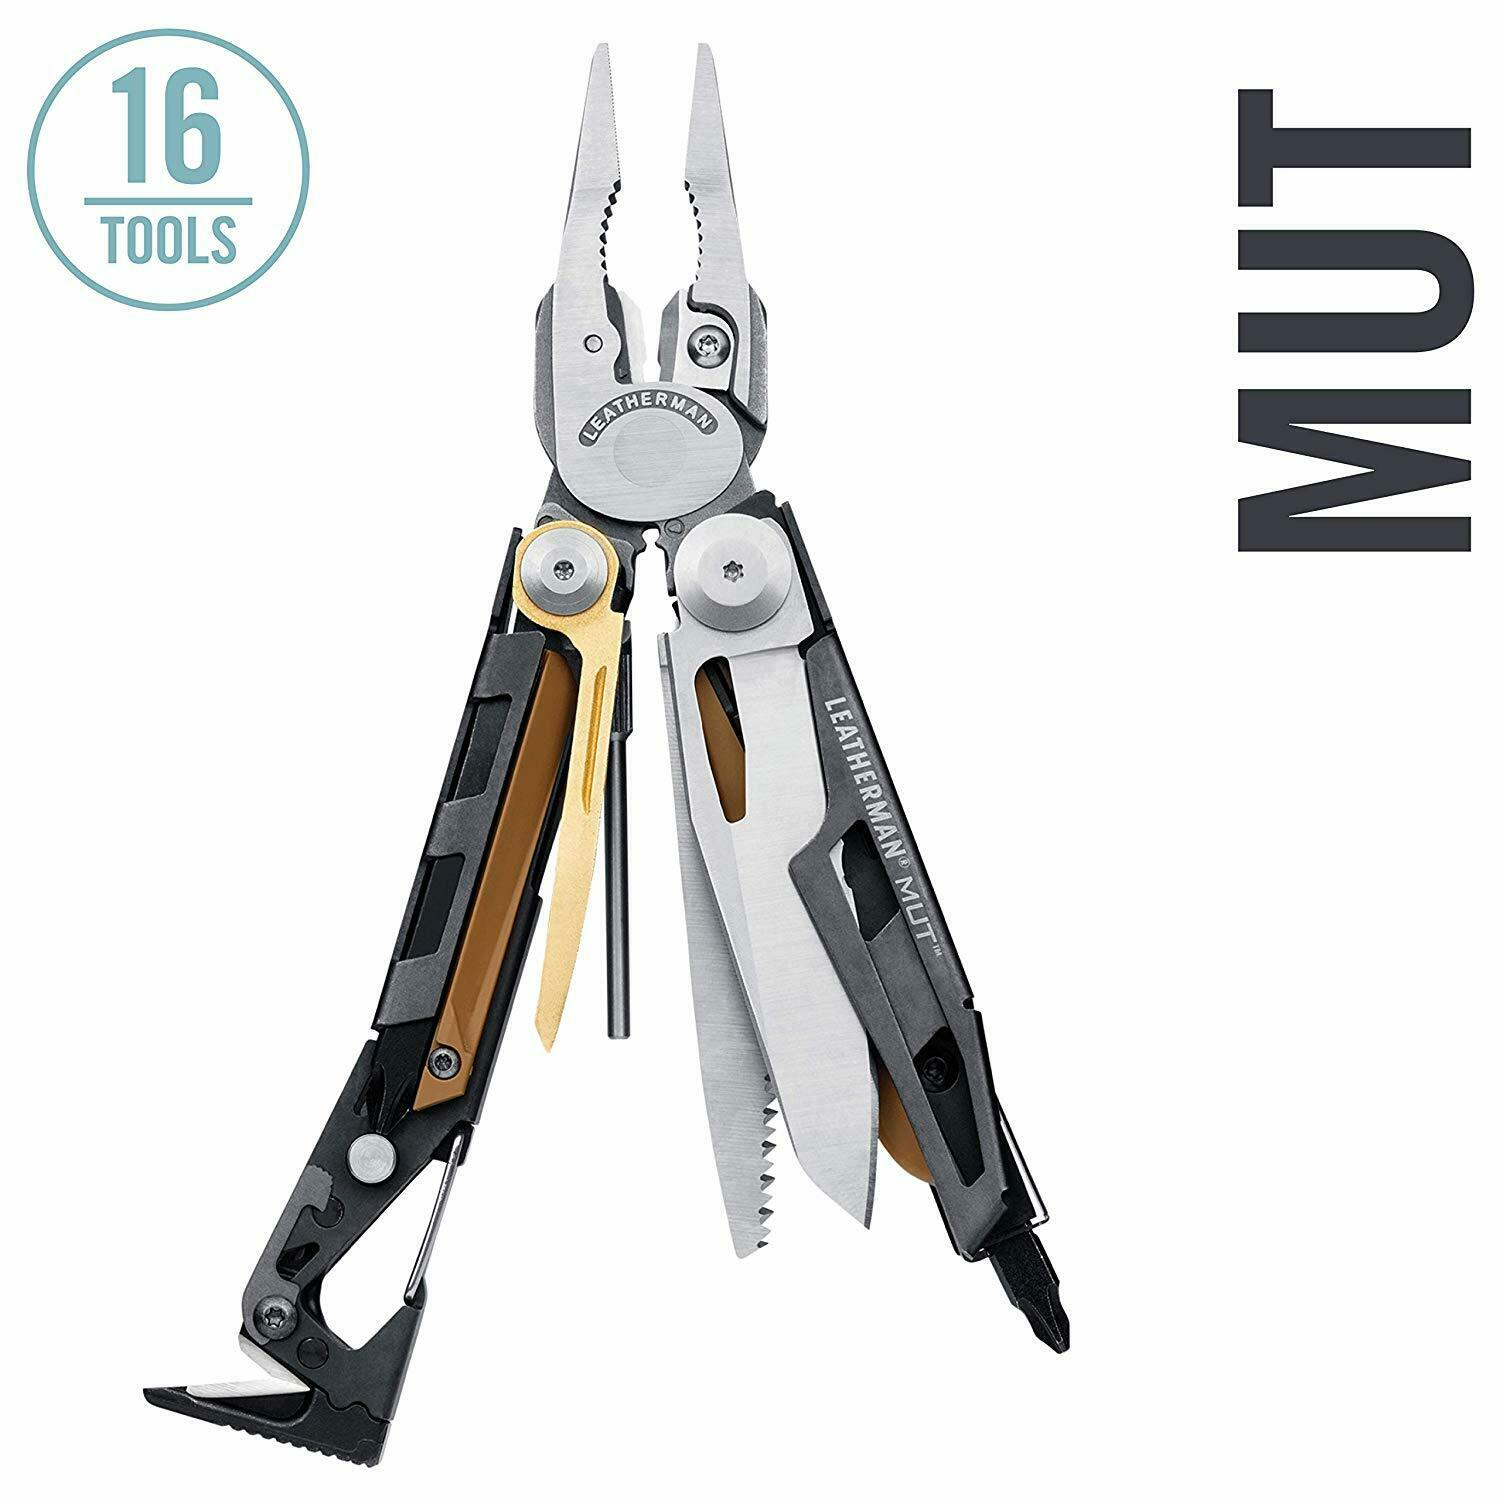 LEATHERMAN 850112 MUT Multitool with  Premium Replaceable Wire Cutters  the best selection of